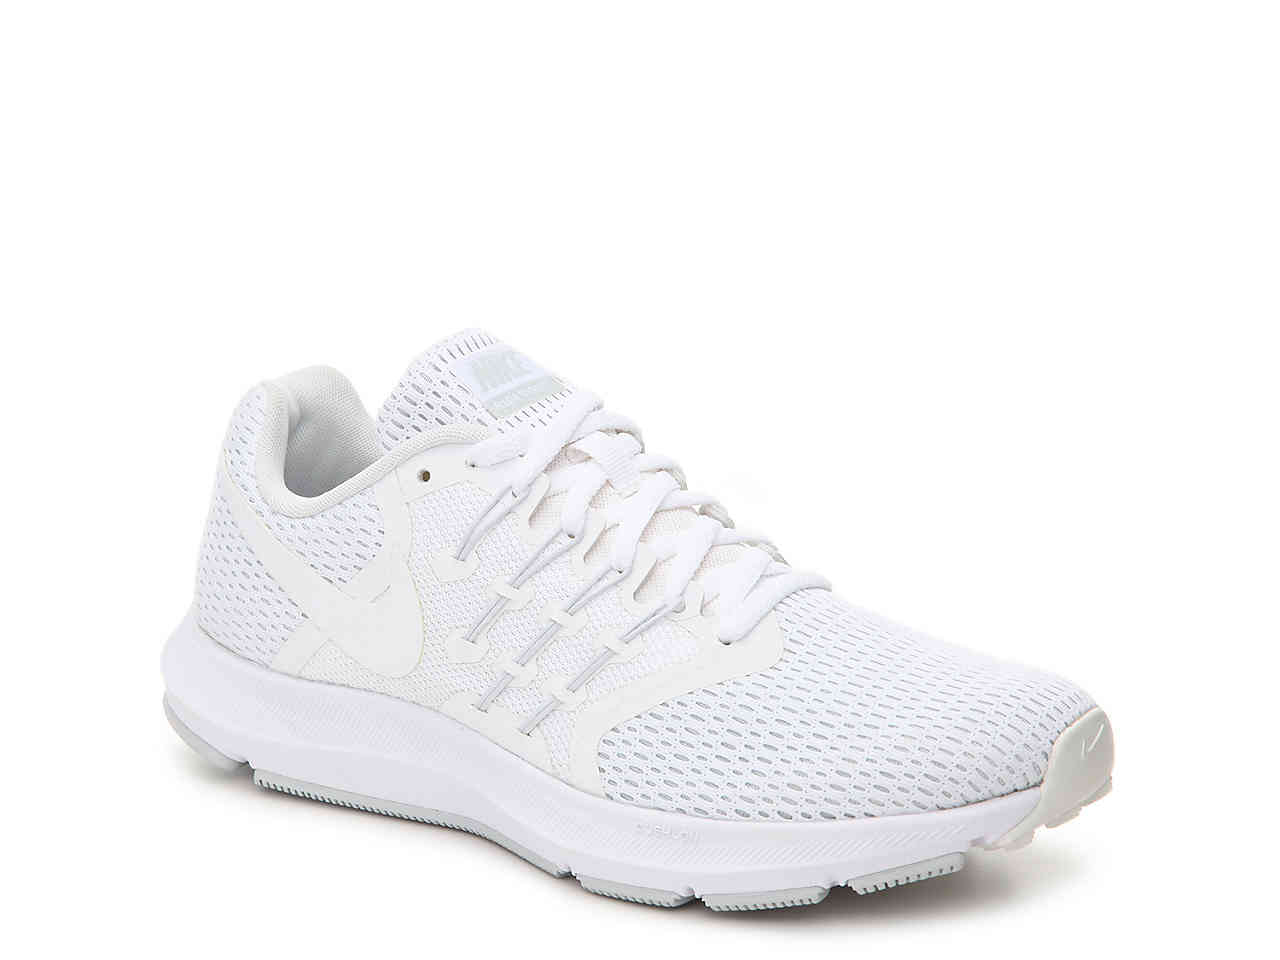 e246ce282de Nike Running Shoes   Nike Sneakers Online at Best Prices ...